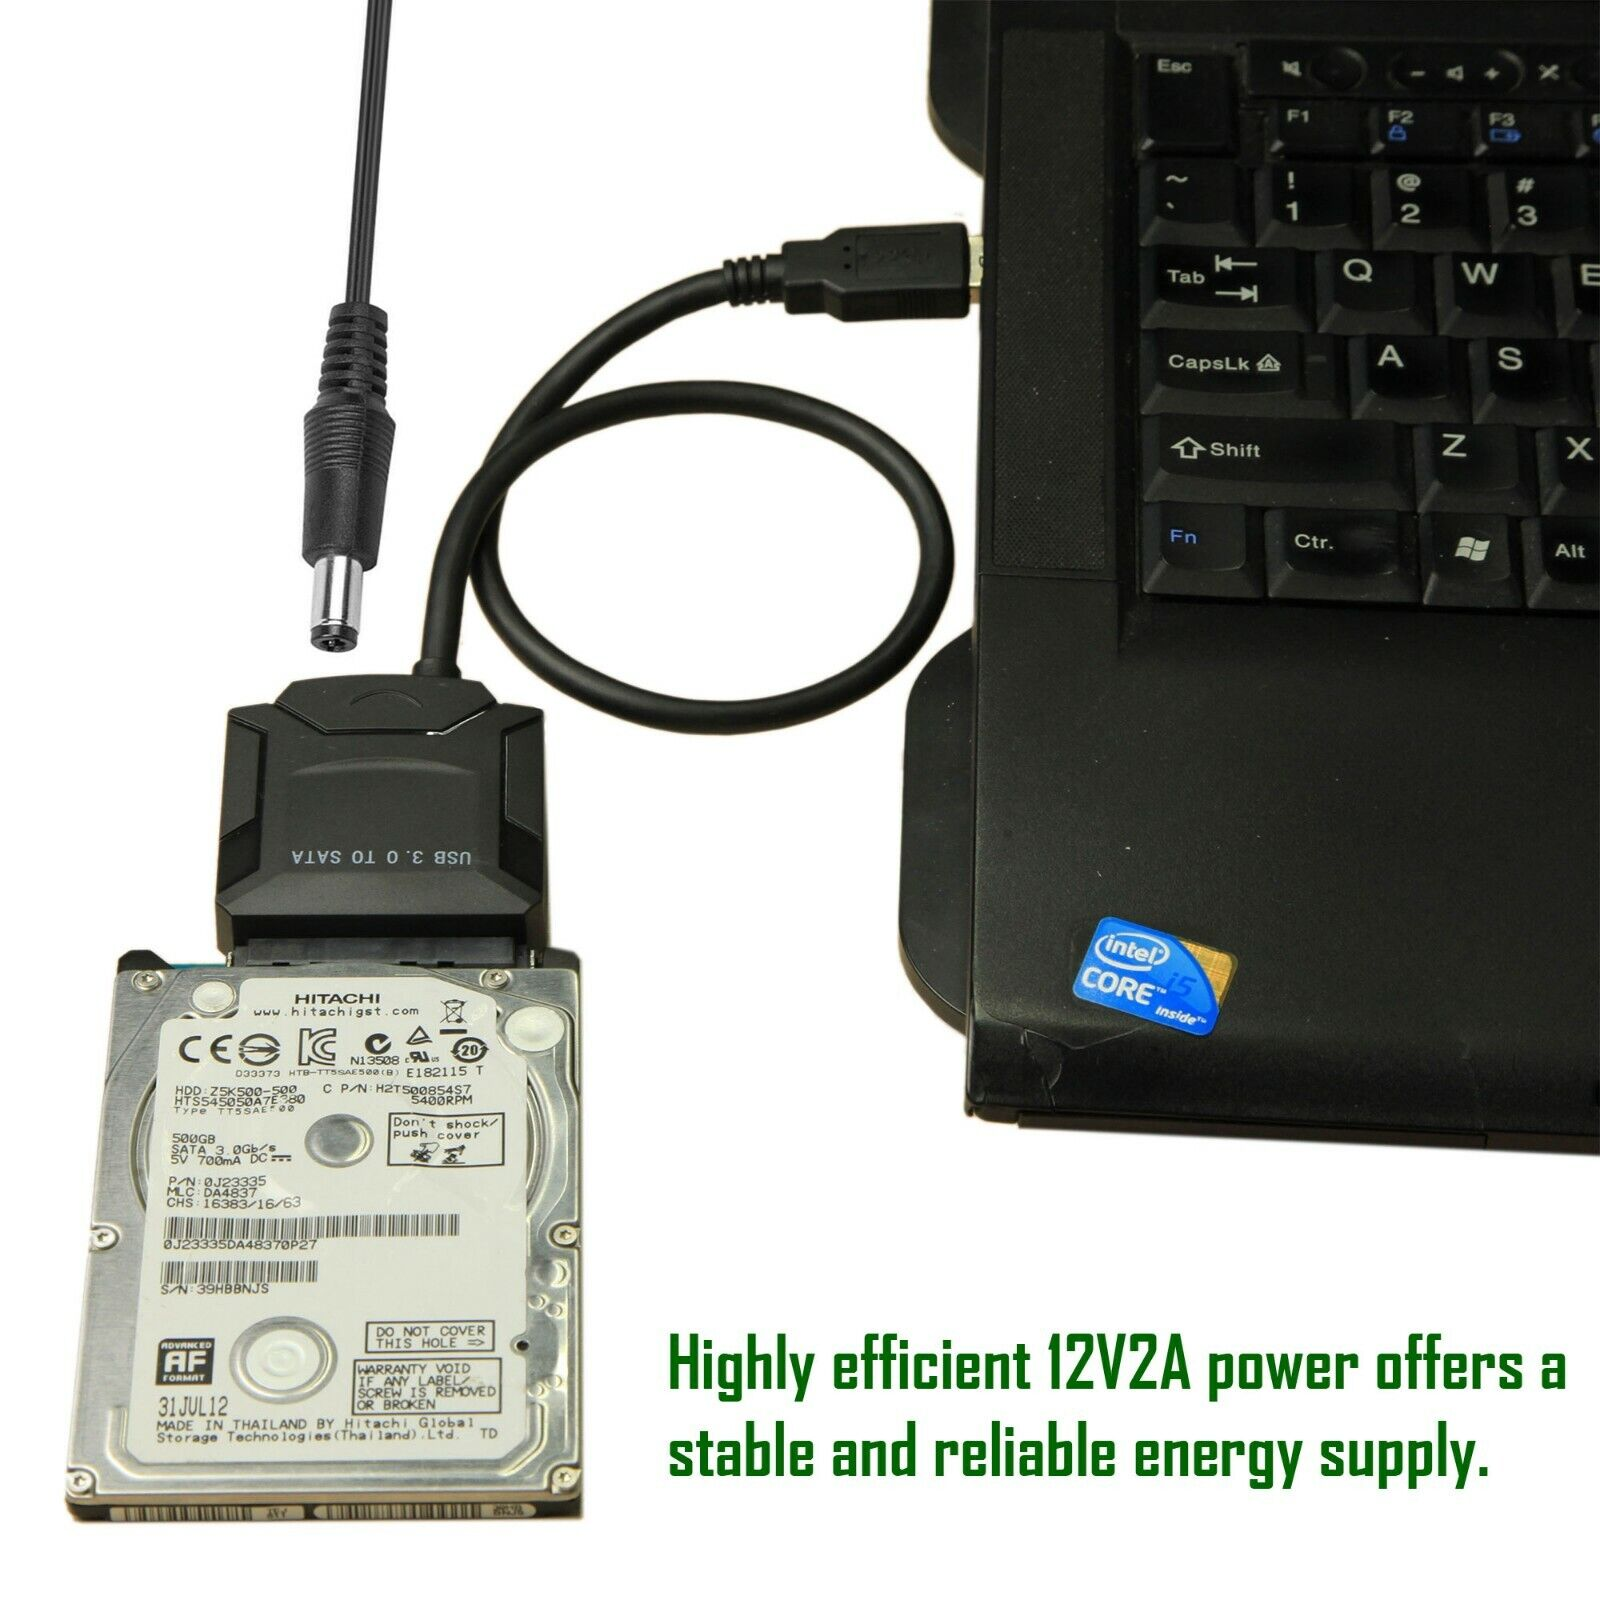 USB 3.0 to SATA III Adapter for 2.5″ 3.5″ SDD HDD Hard Drives with 12V/2A Power Computer Cables & Connectors